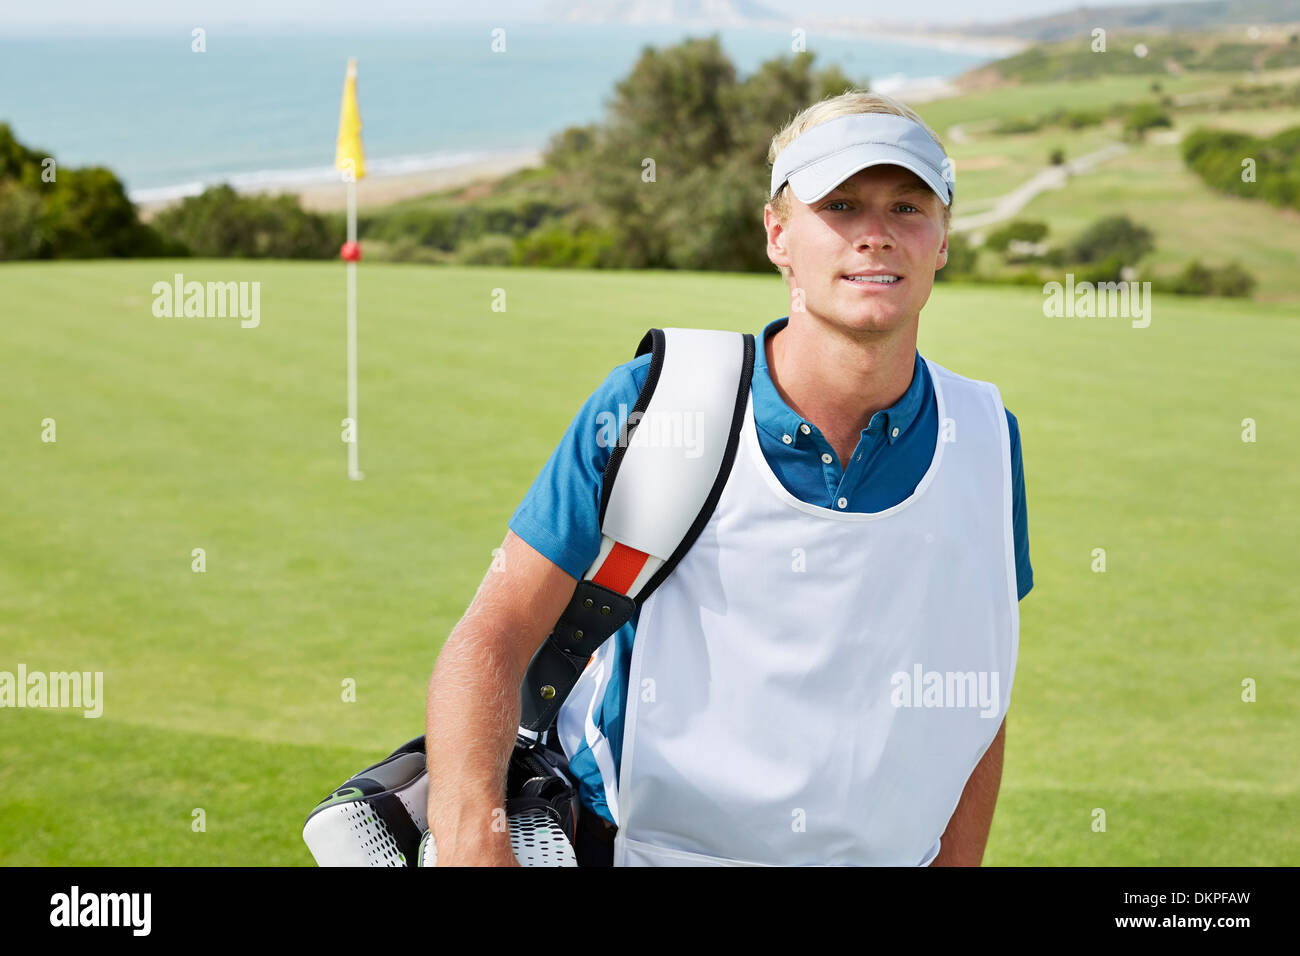 Caddy smiling on golf course - Stock Image